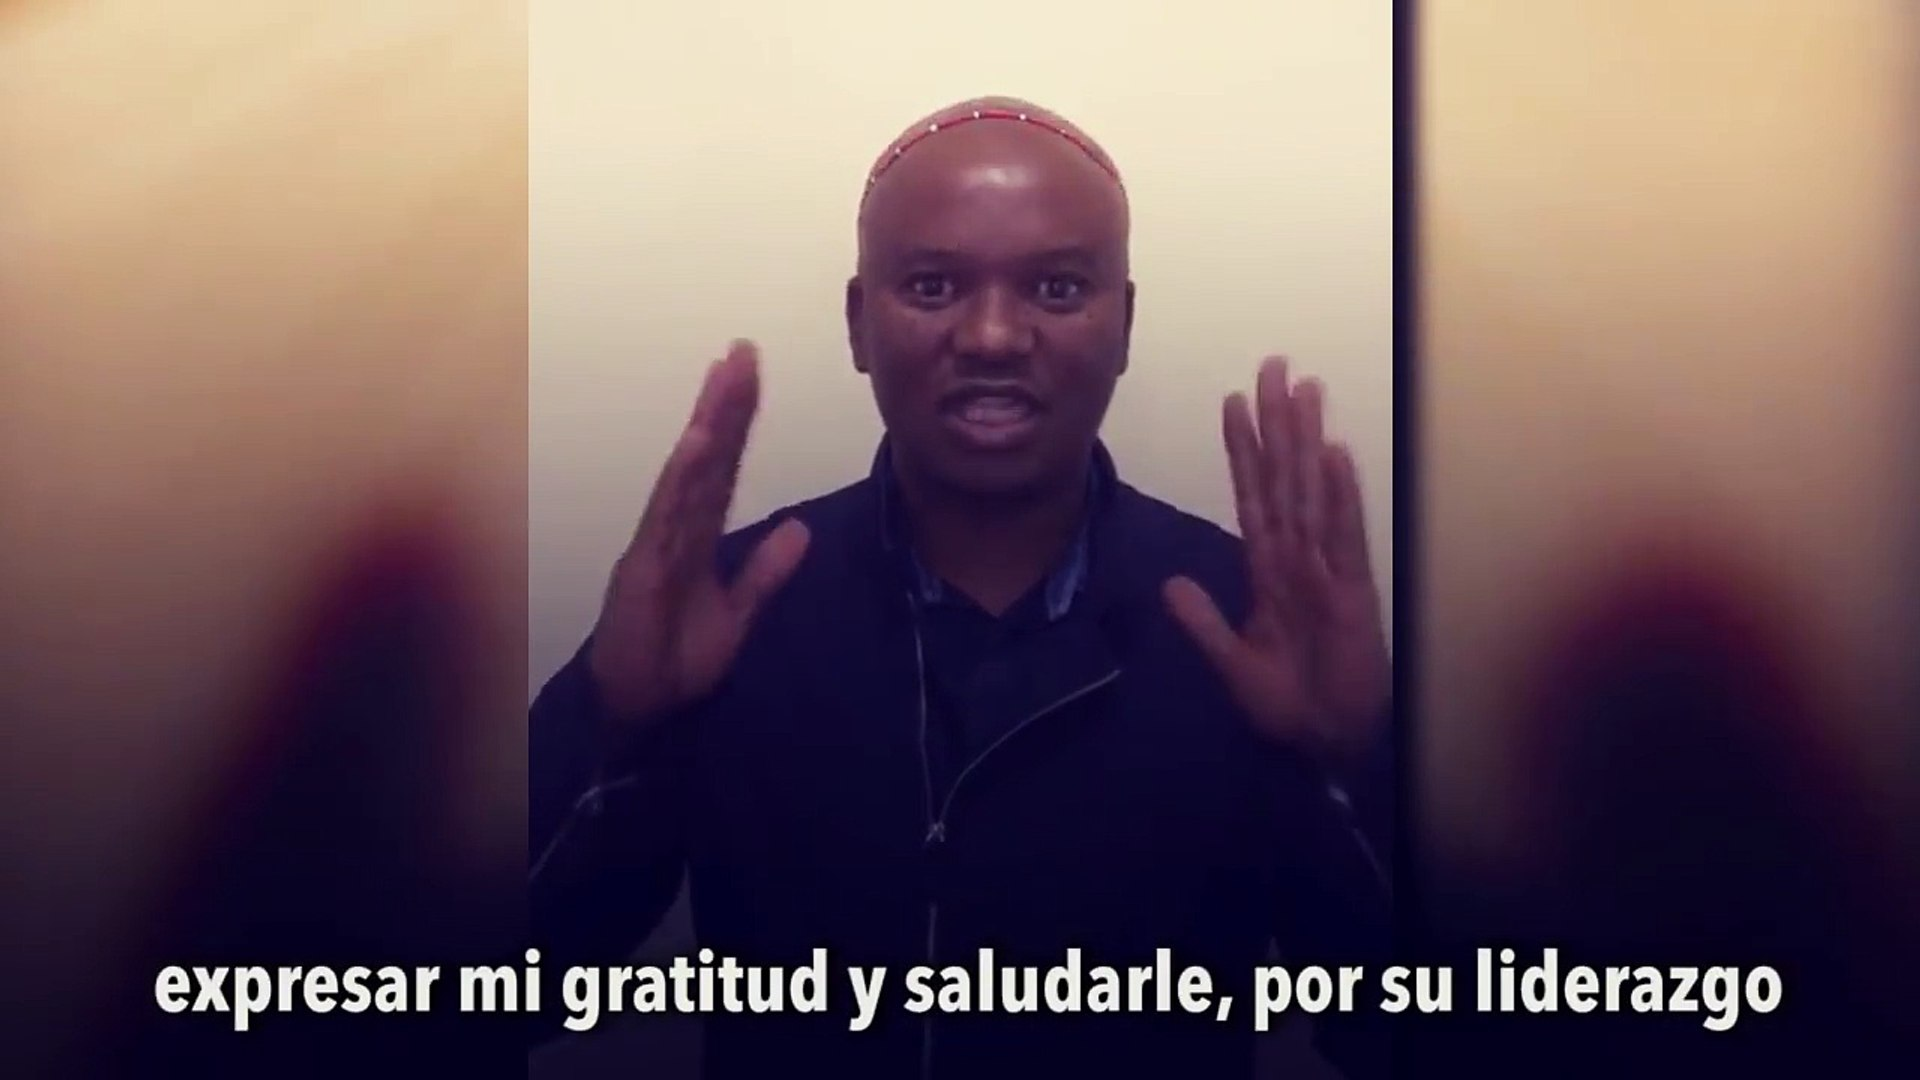 Message from South Africa to the Venezuelan government and people